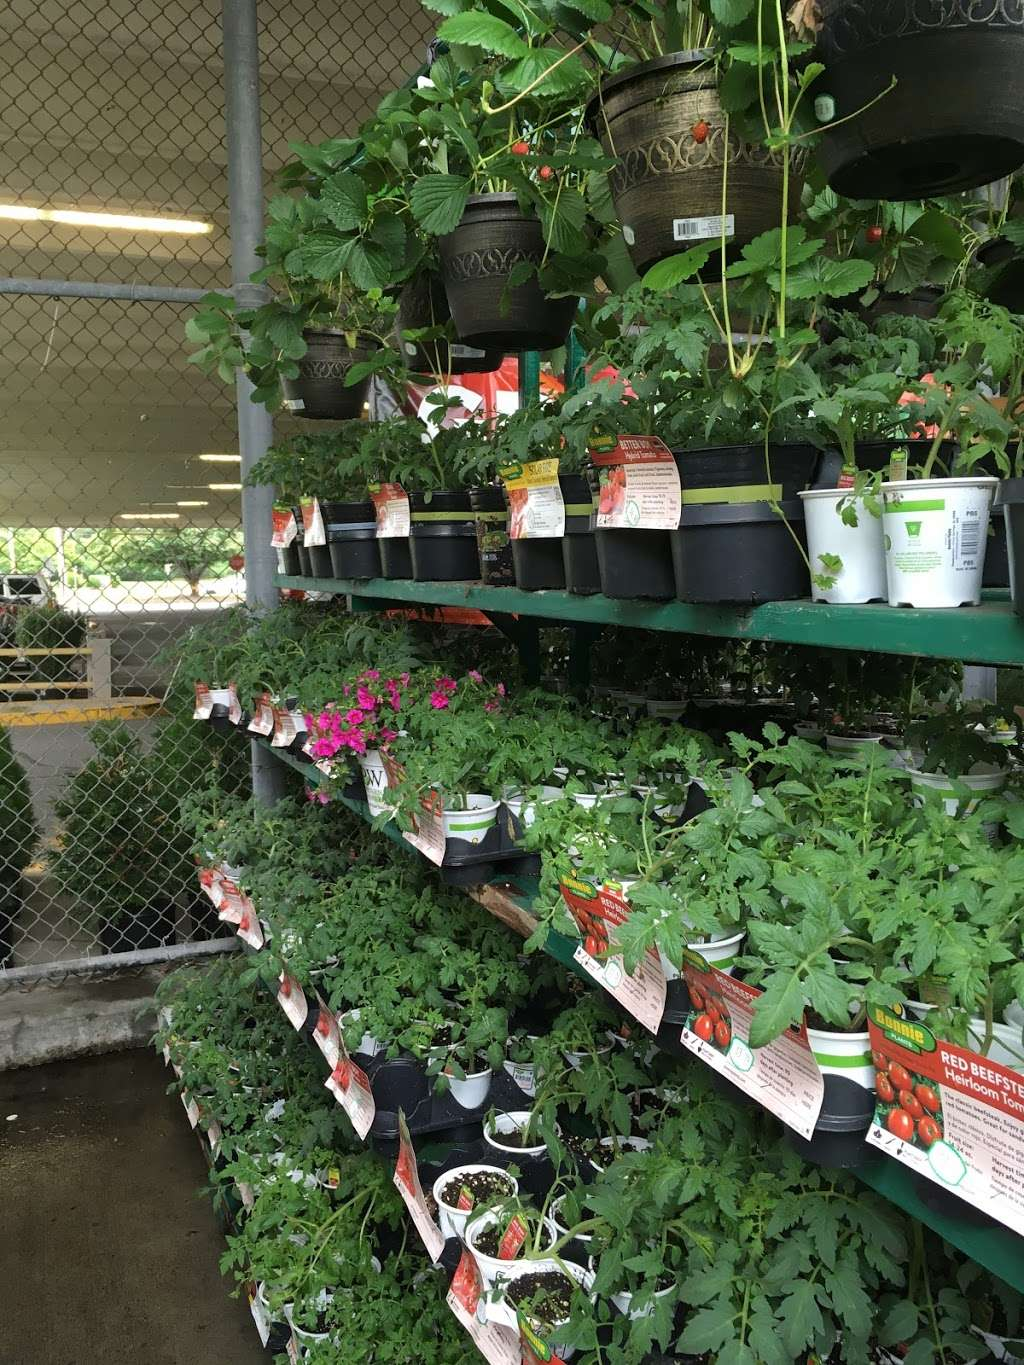 Garden Center at The Home Depot - furniture store  | Photo 3 of 3 | Address: 1055 Paterson Plank Rd, Secaucus, NJ 07094, USA | Phone: (201) 271-1200